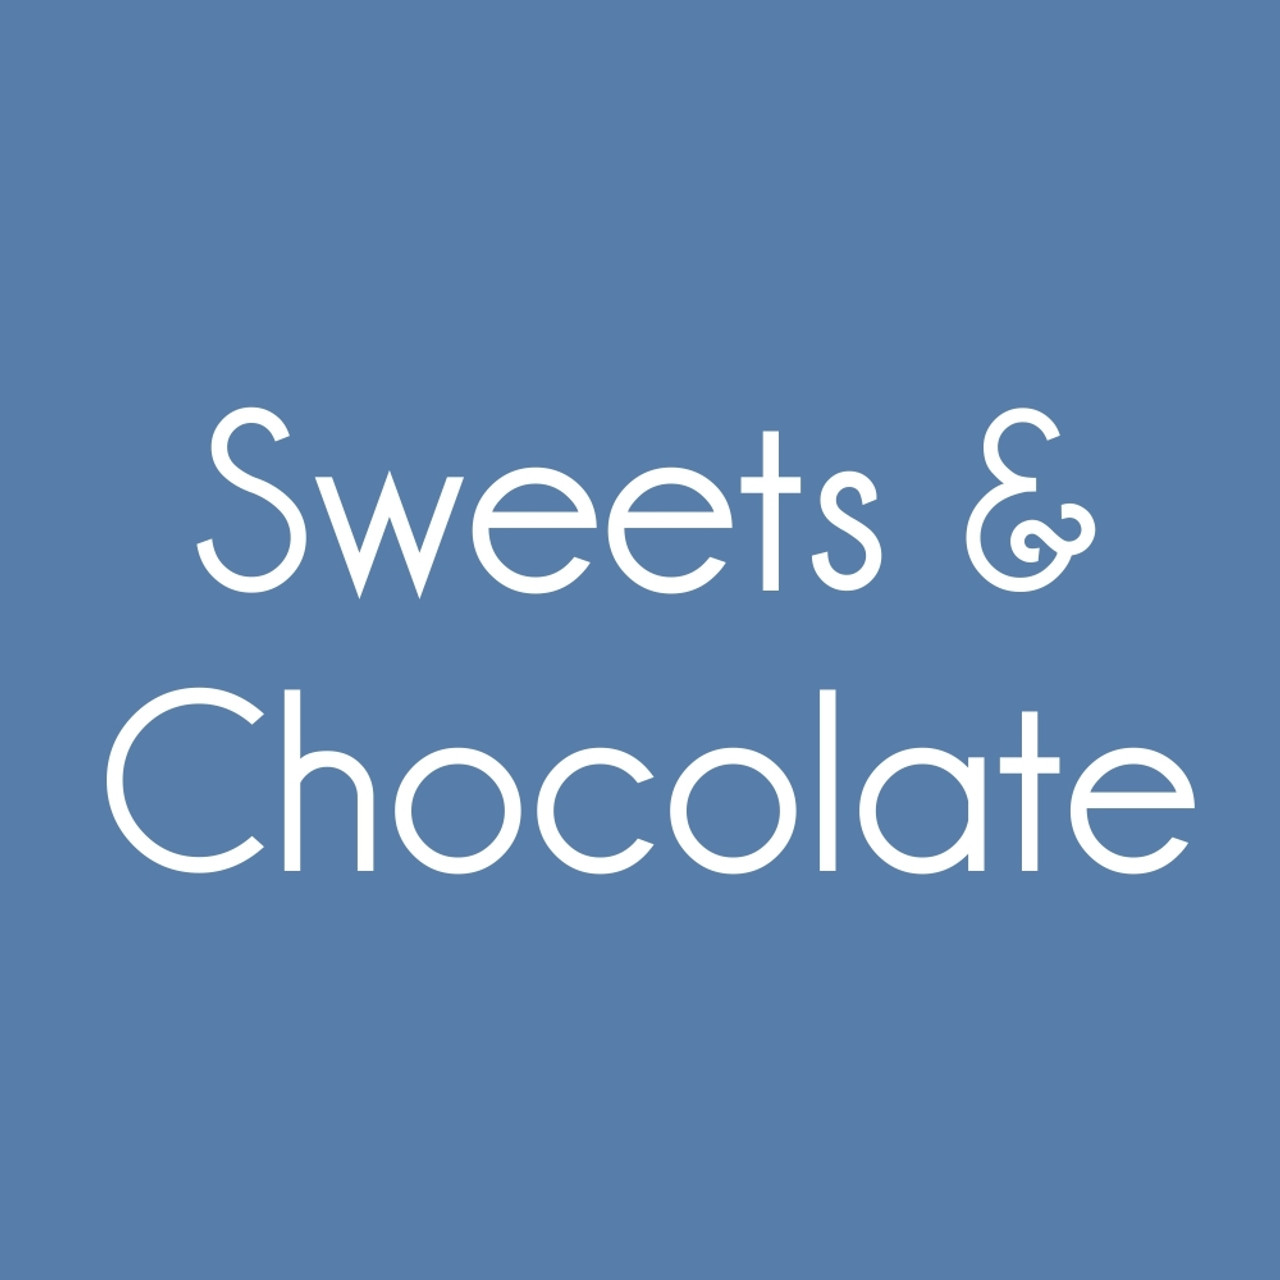 Sweets & Chocolate